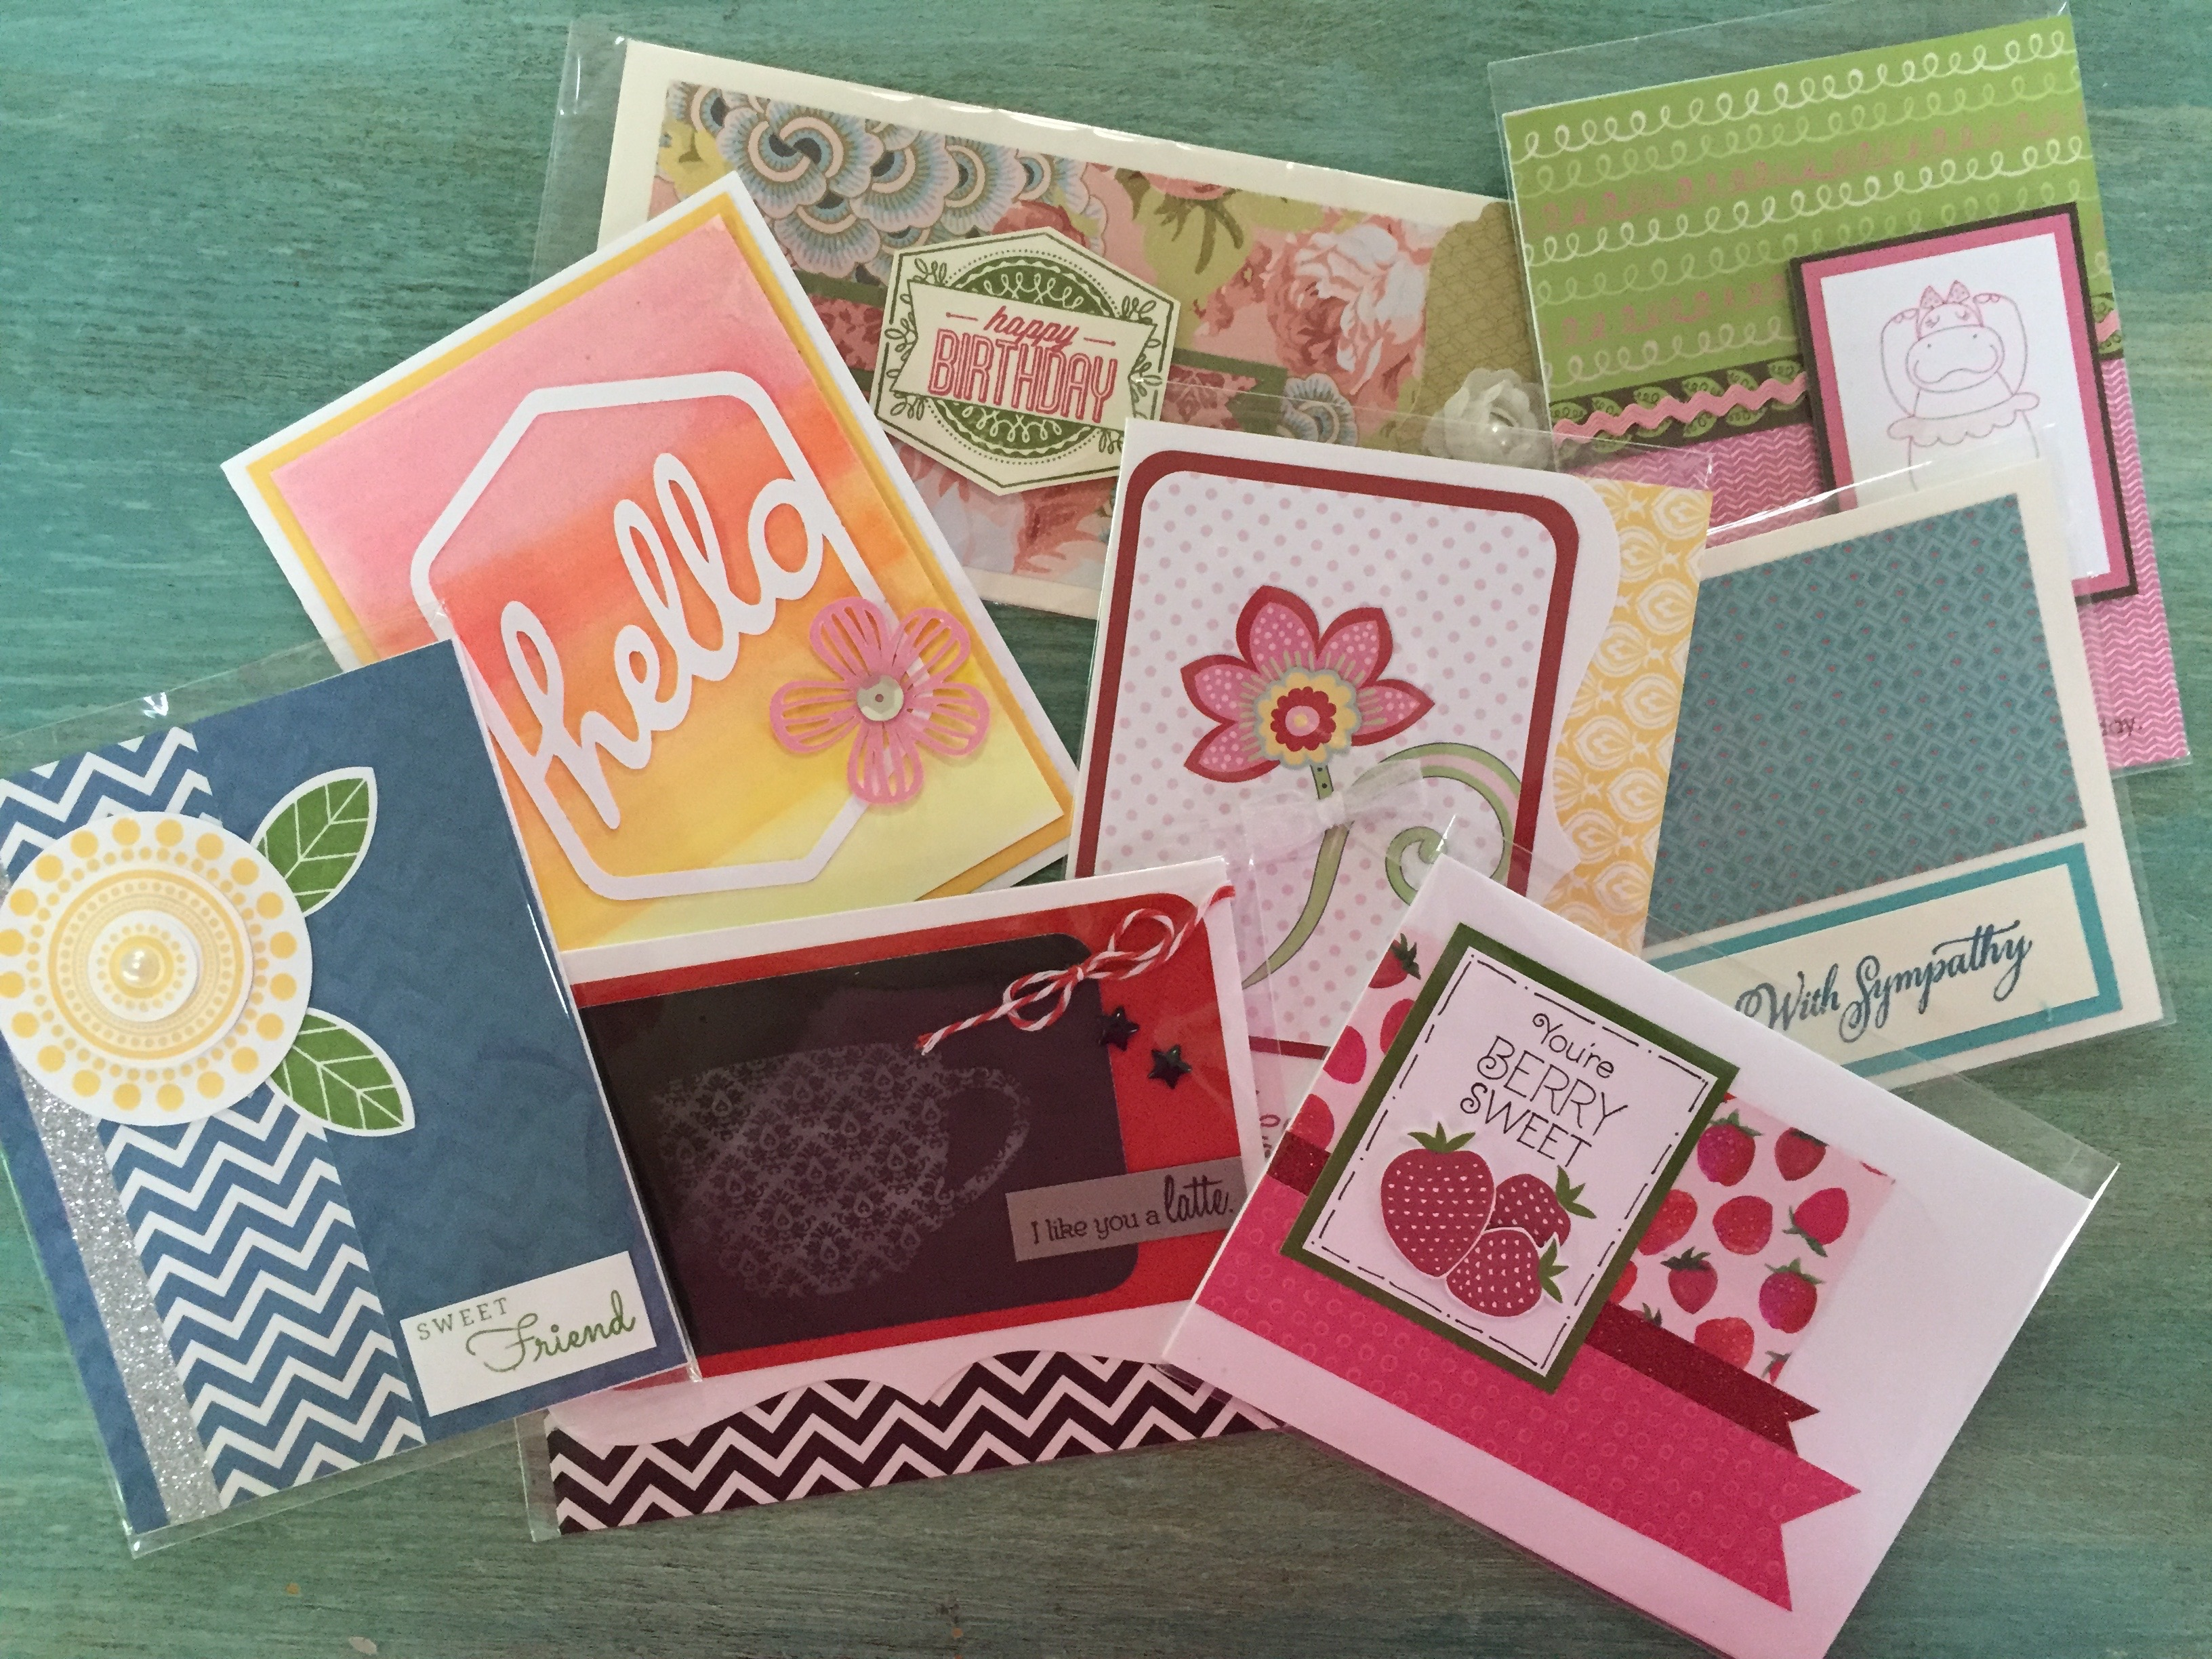 Have fun at my Card Buffet this week!